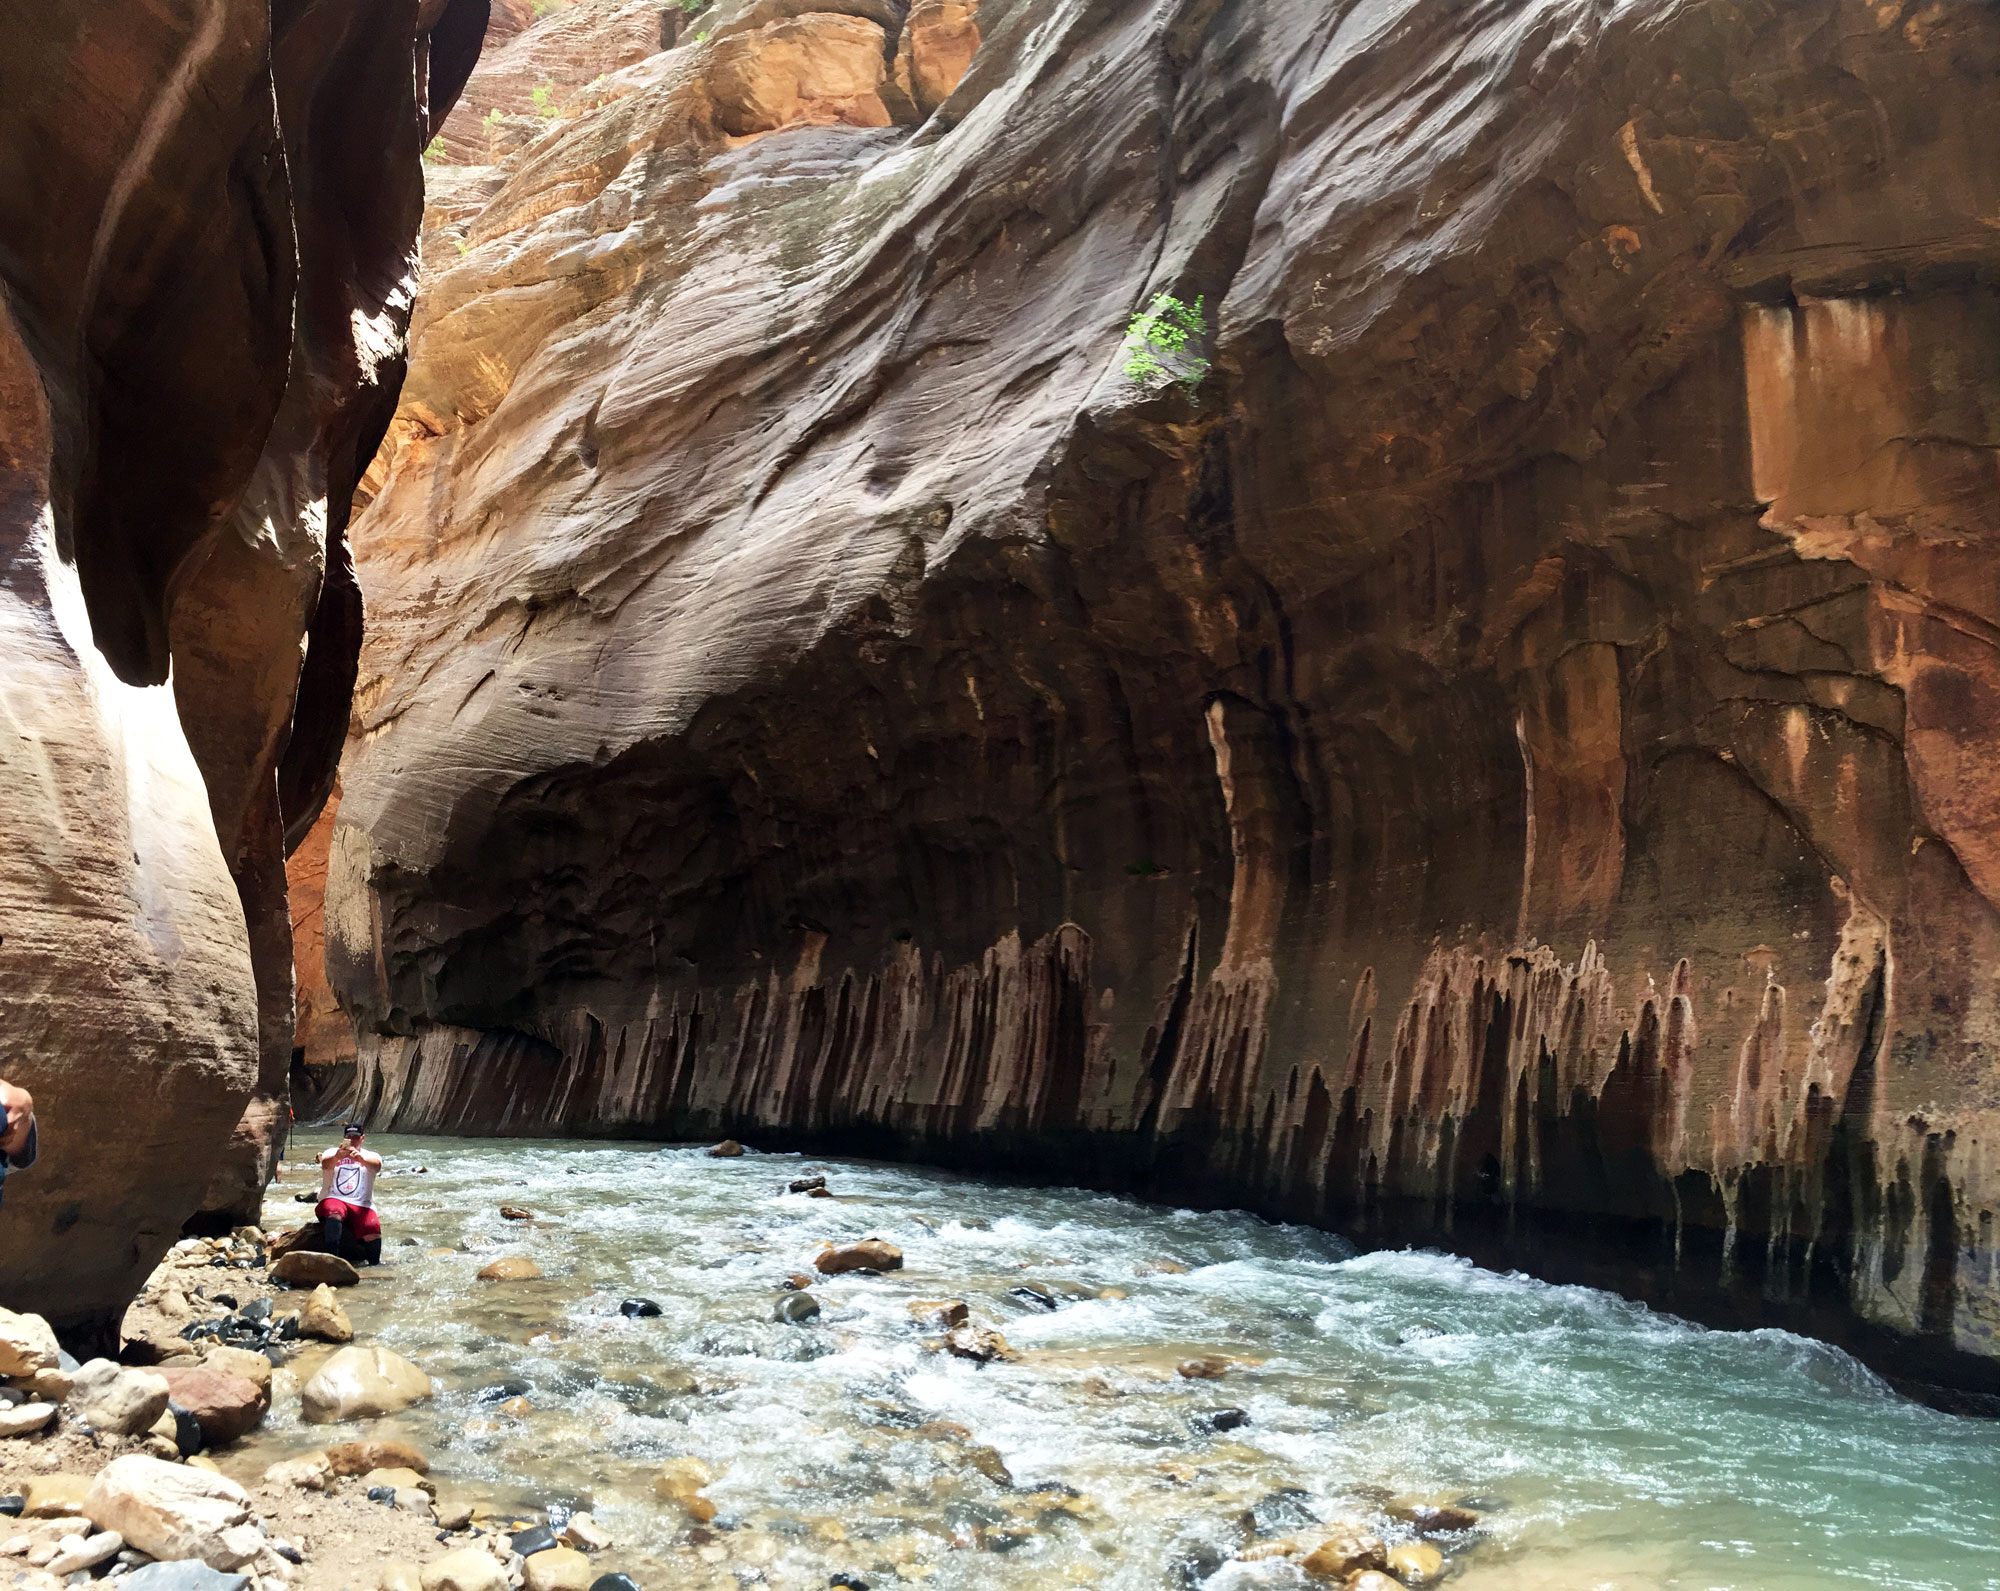 How to Prepare for a Hiking Trip to Zion's Narrows